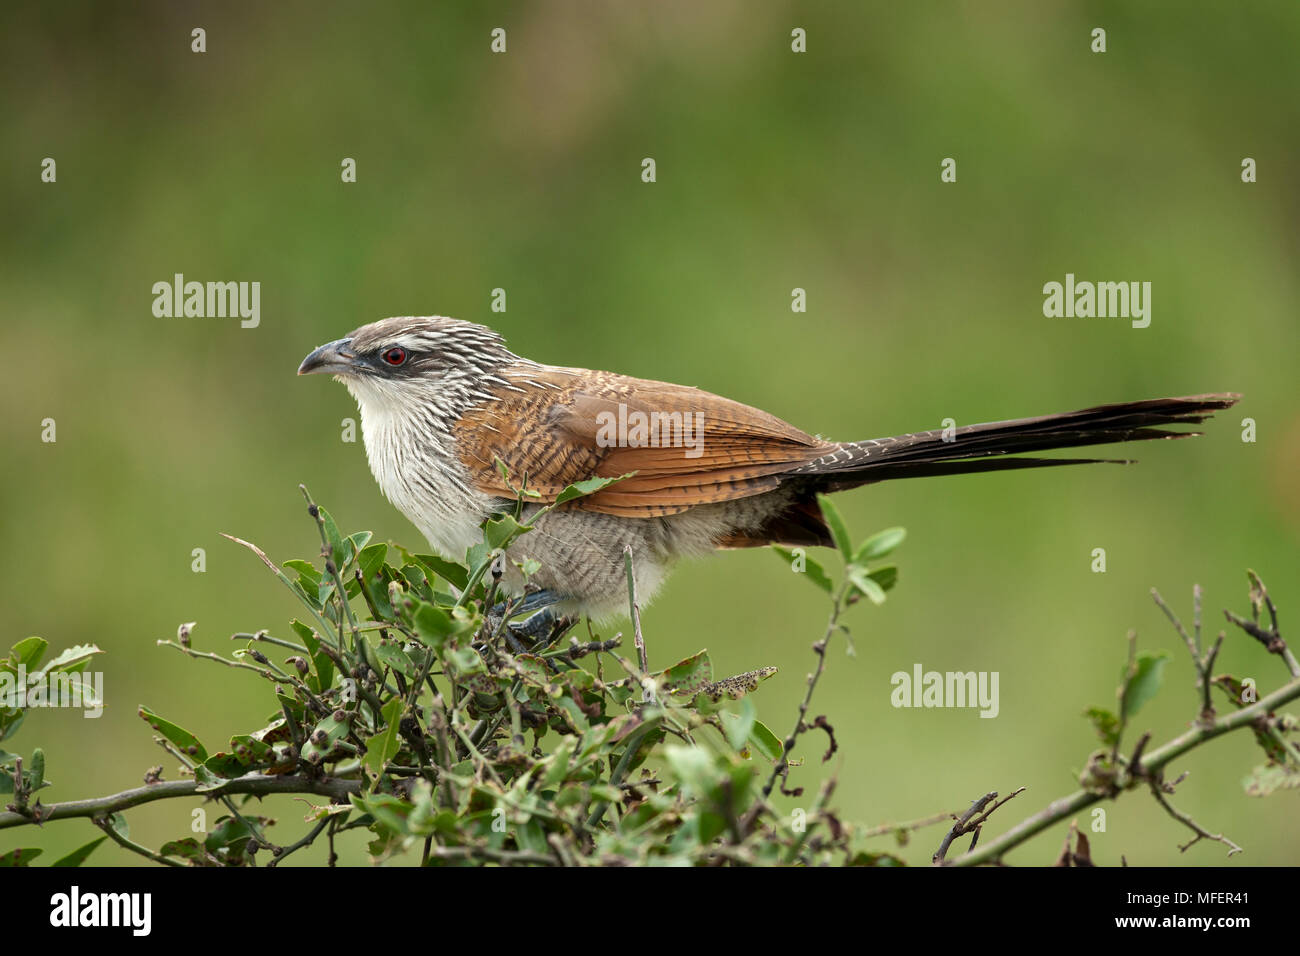 White-browed coucal, Centropus superciliosus; Masai Mara, Keya. - Stock Image